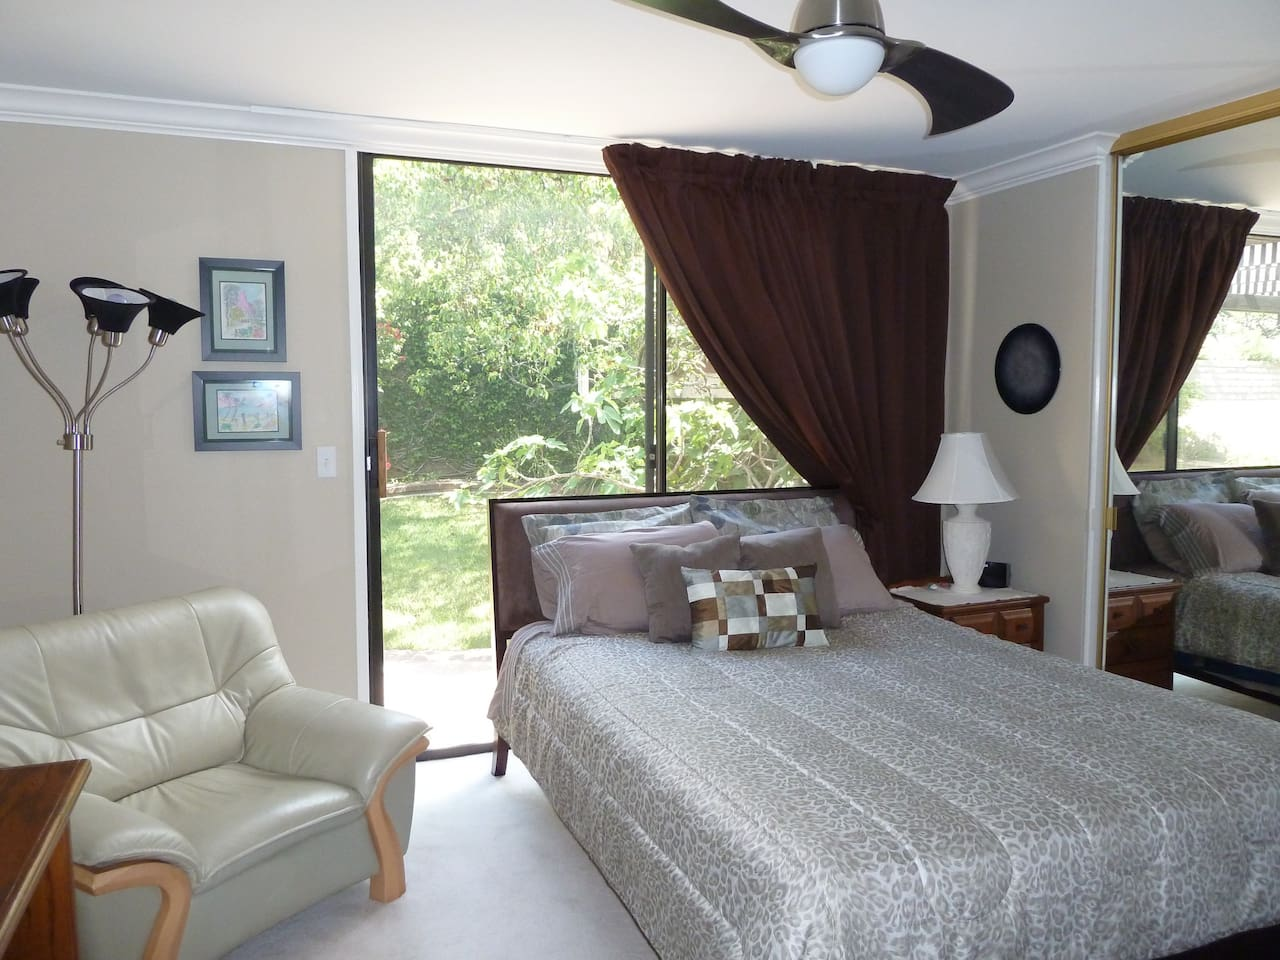 New Queen size  bed and blackout curtains for a good nights sleep!  Ceiling fan for summer comfort with dimmable light.